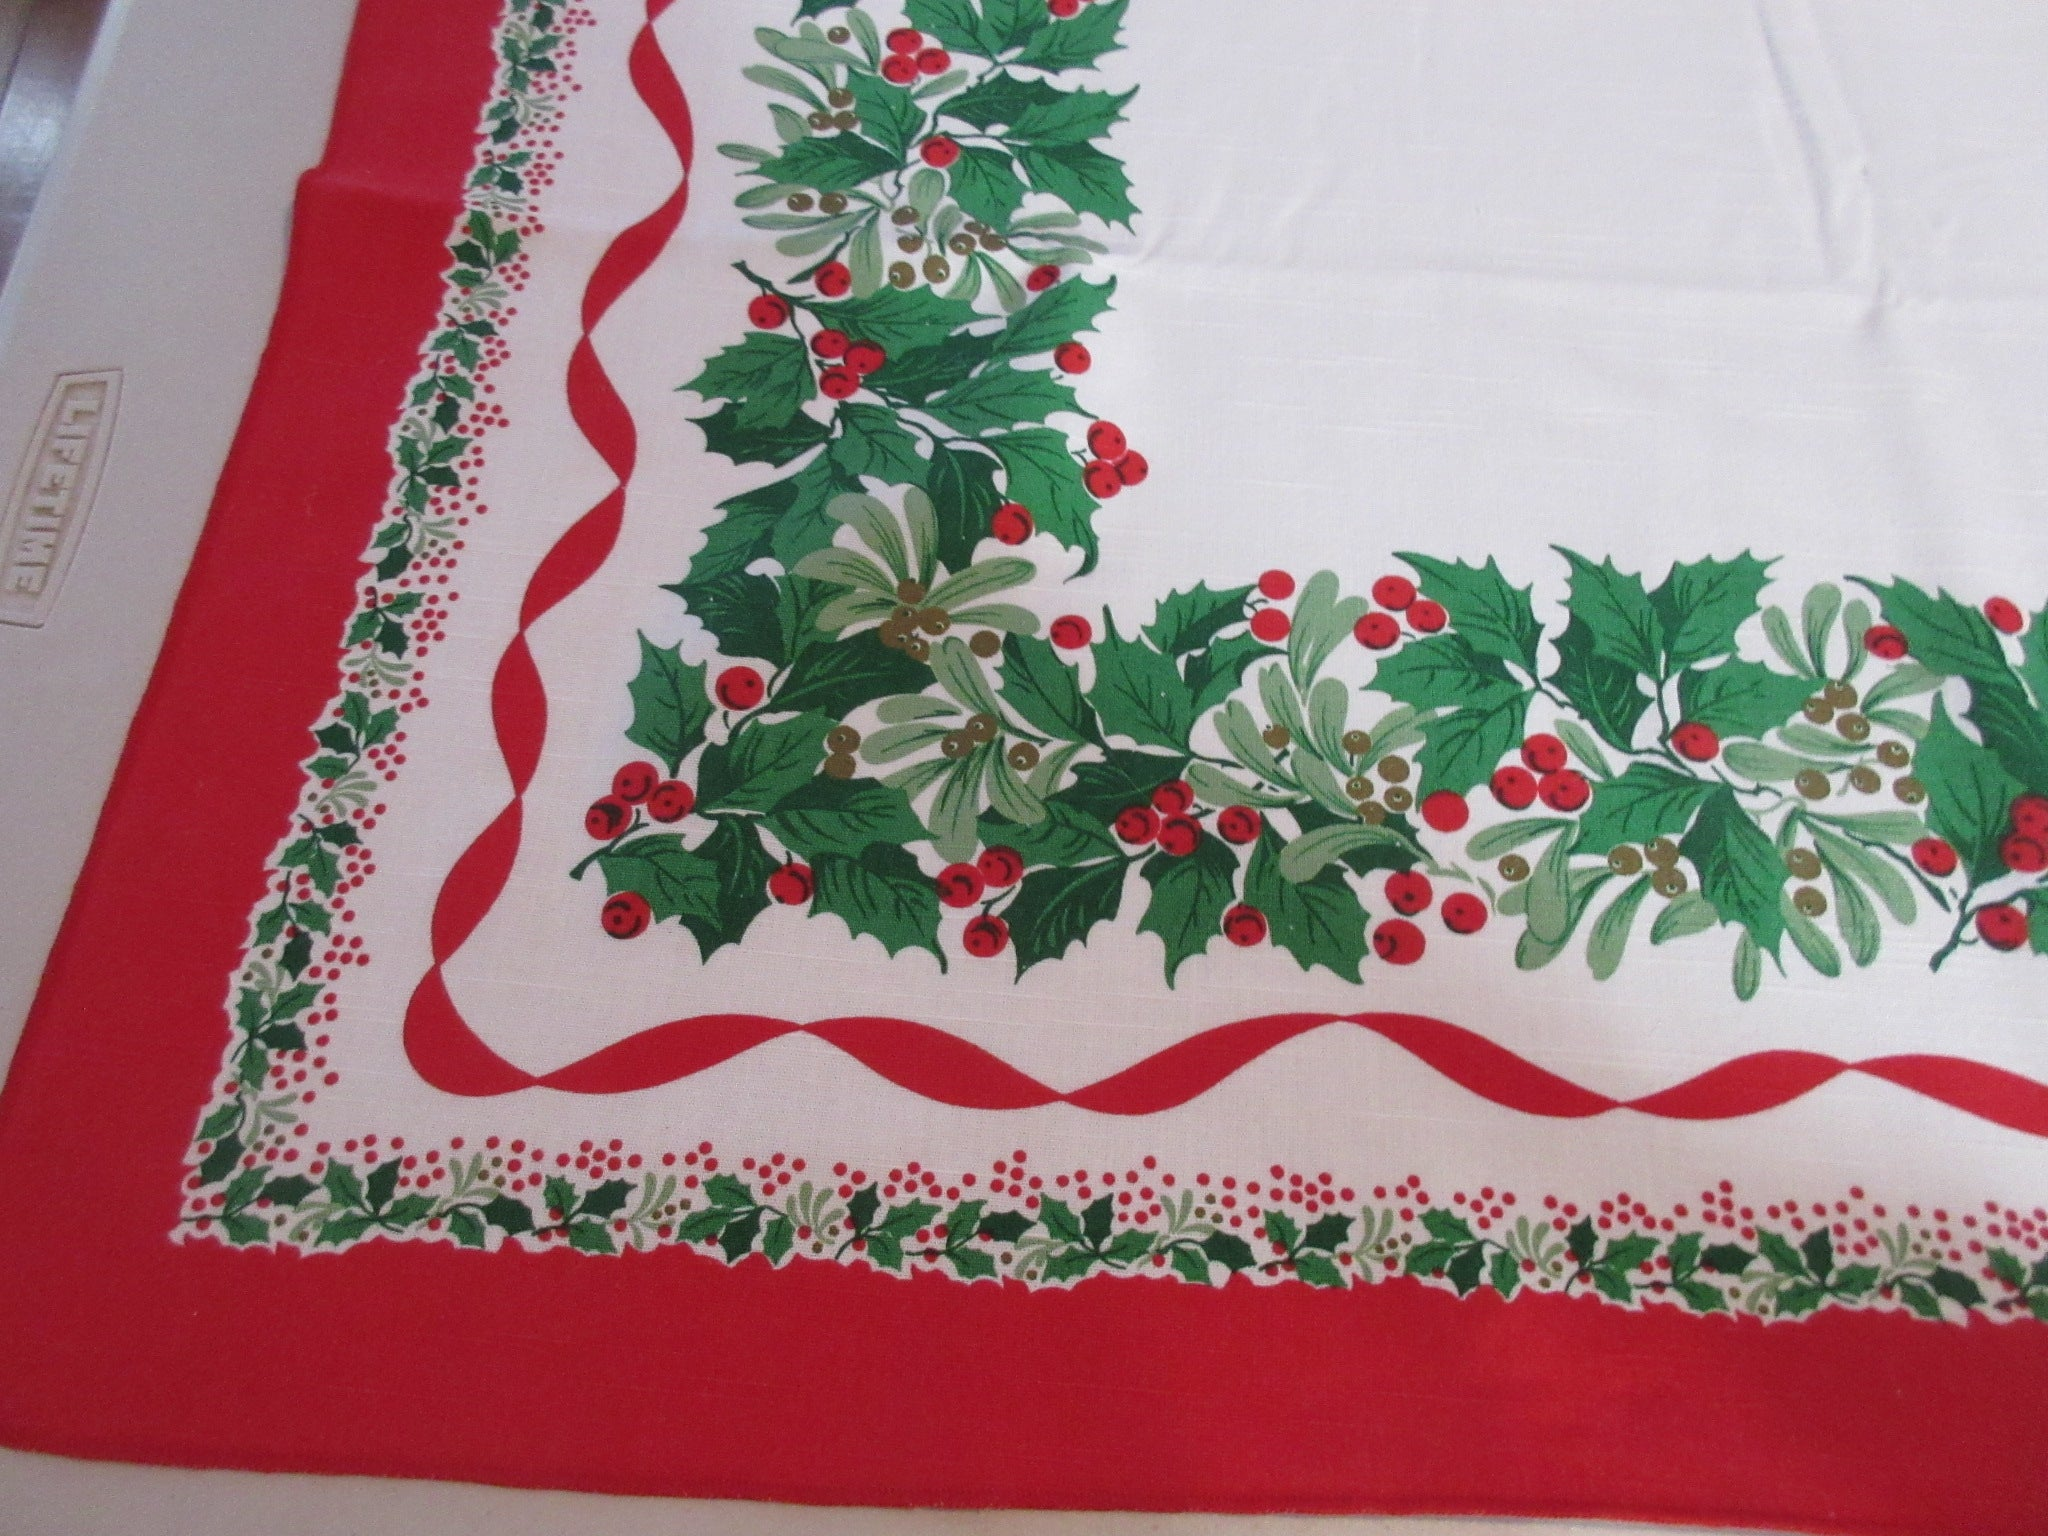 RECTANGLE 52x70 Christmas Mistletoe Printed Tablecloth (69 X 50 actual)